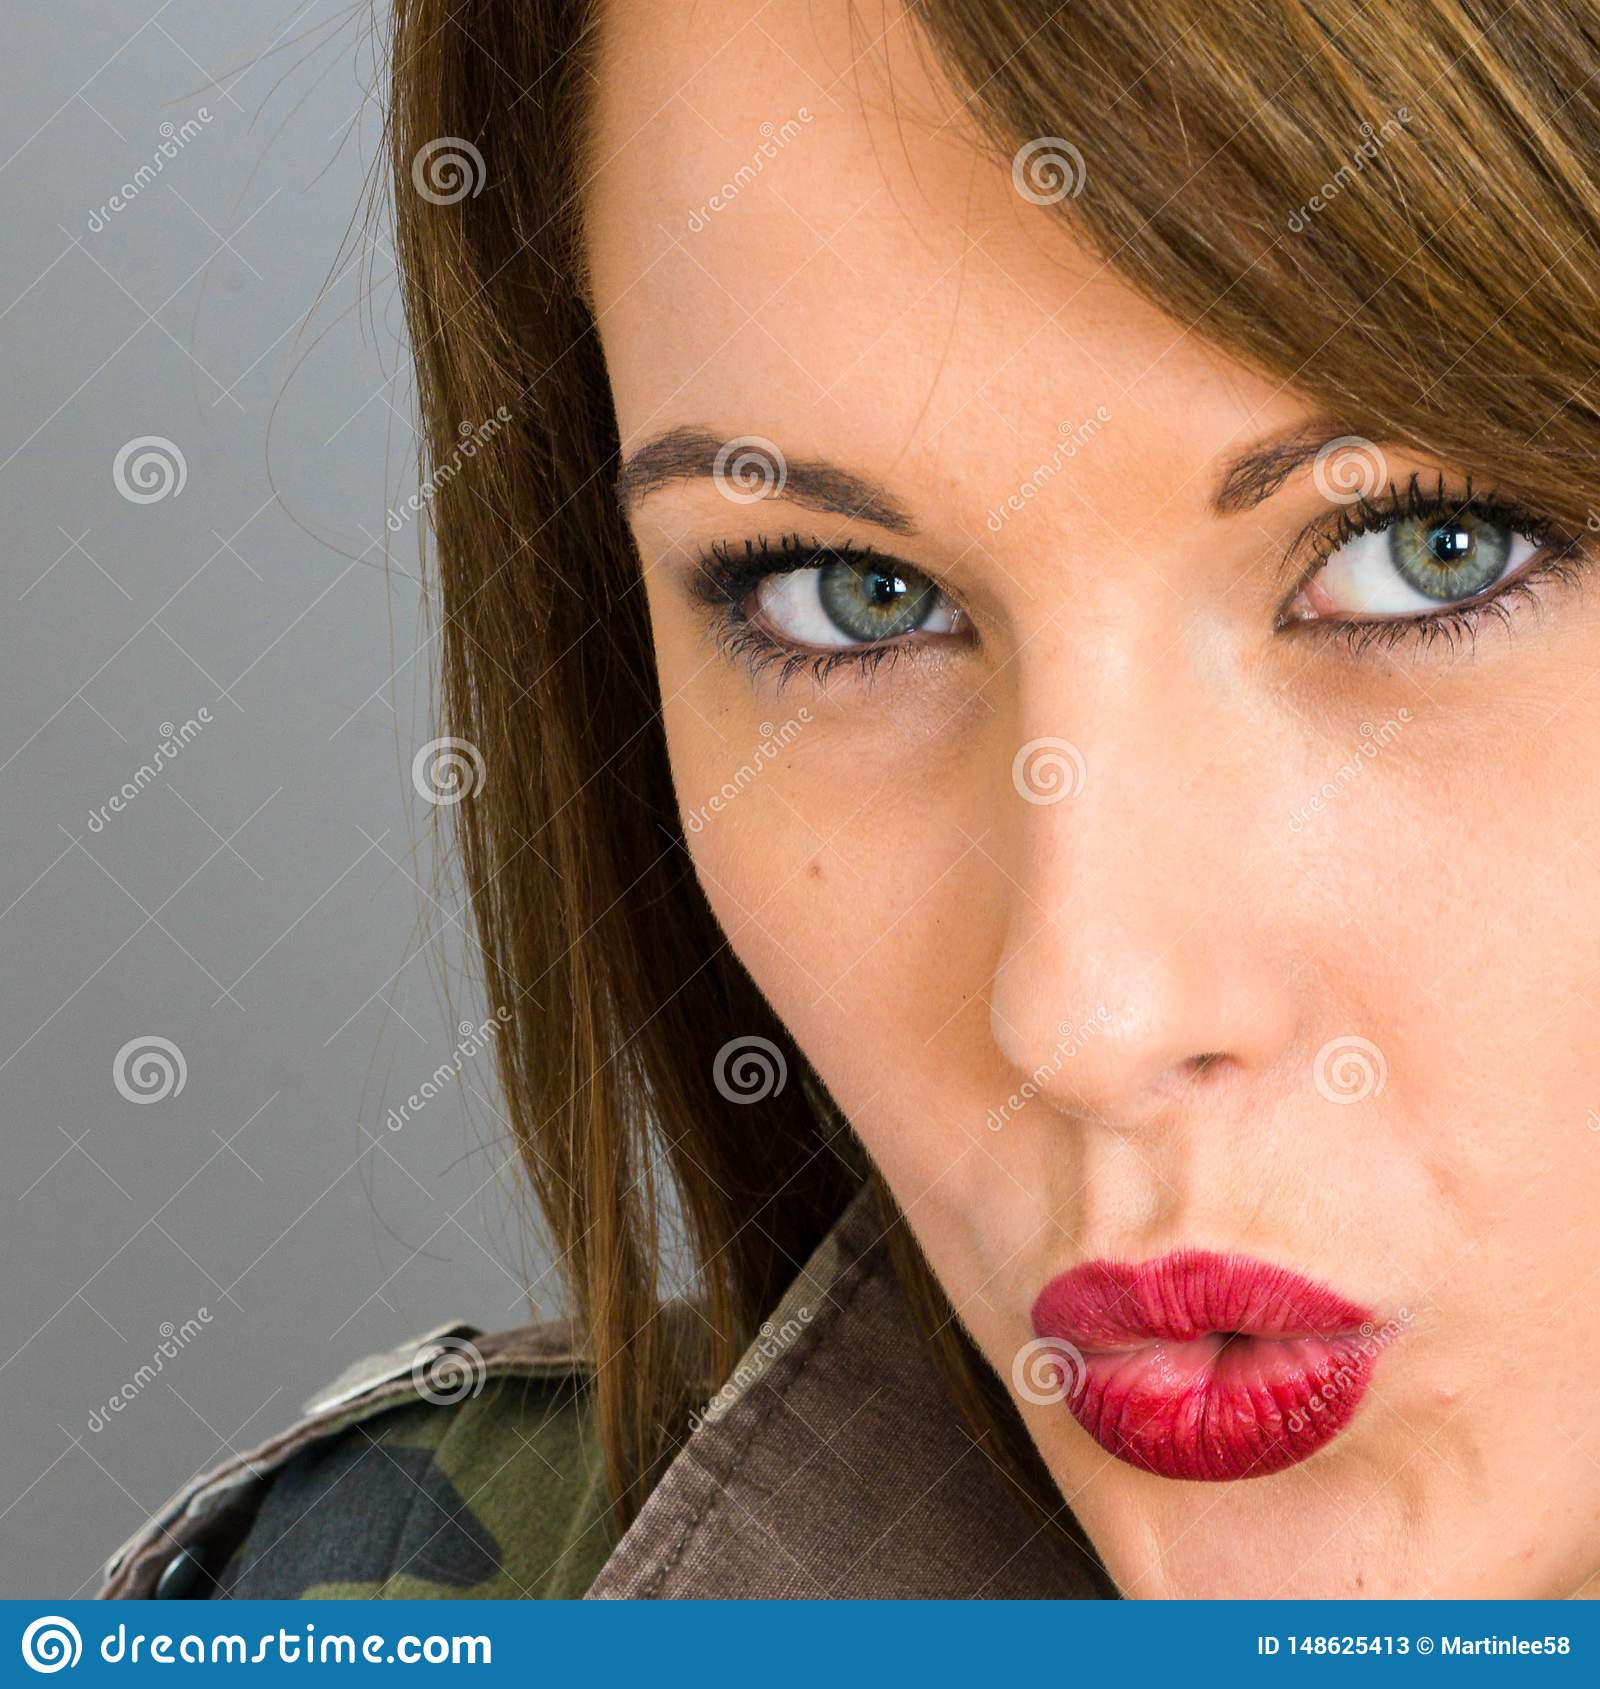 Young Woman Blowing a Kiss Looking Sensual